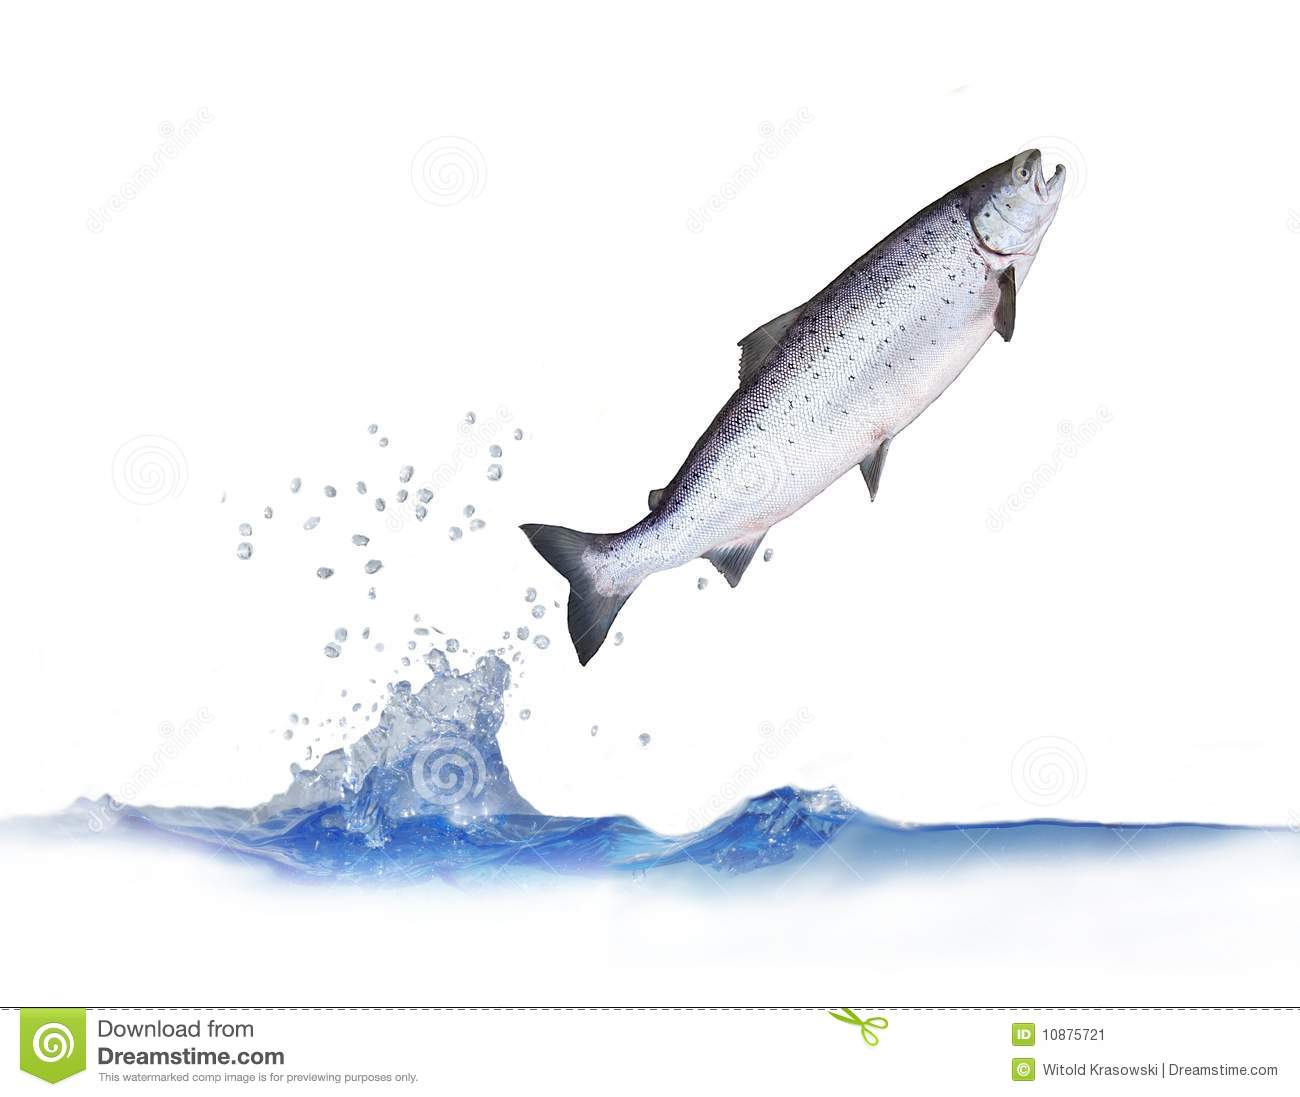 Salmon fish jumping images galleries for Salmon fish images